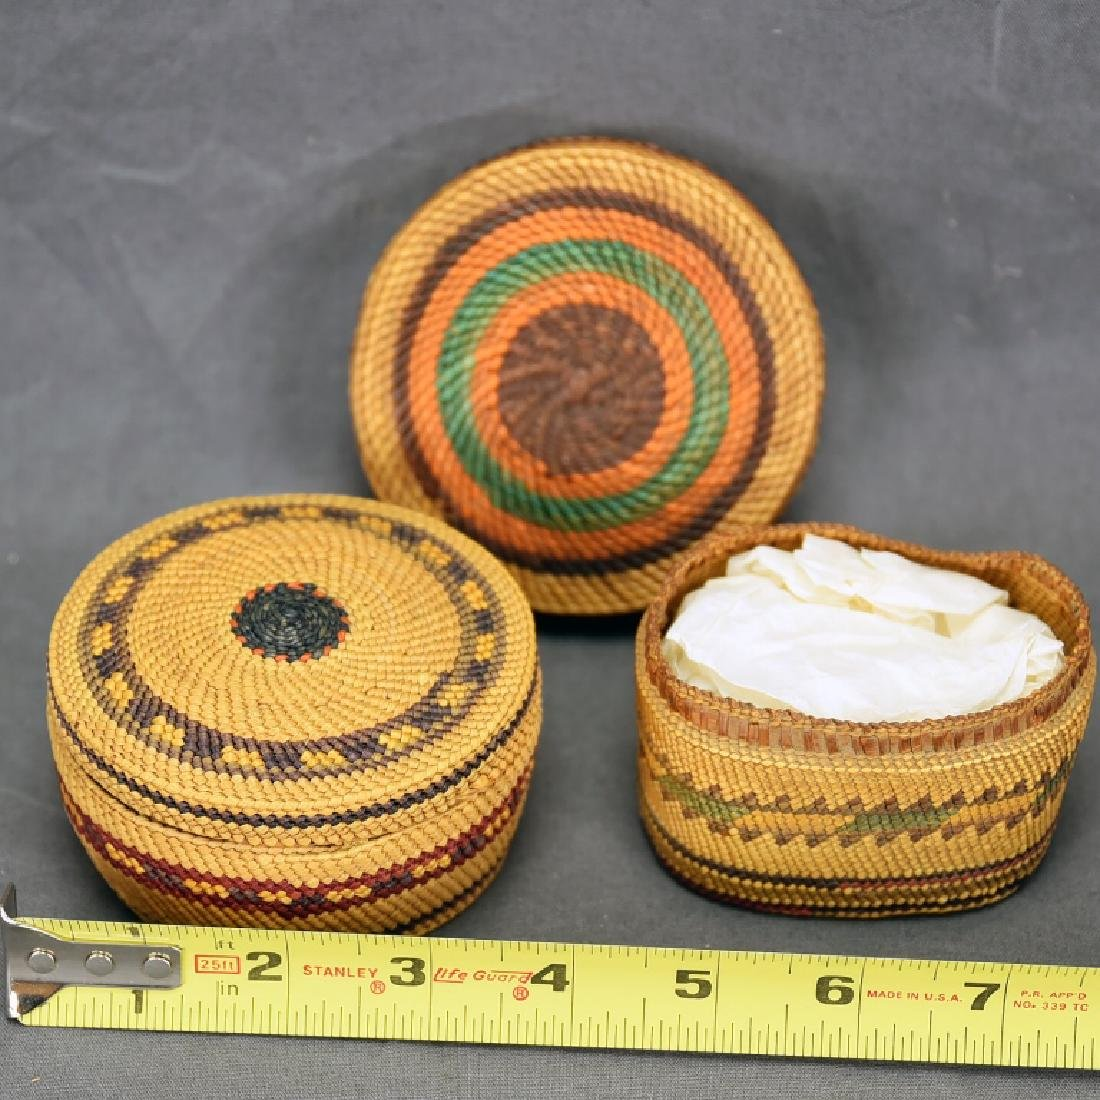 Lot of 2 Native American Makah Trinket Baskets - 4